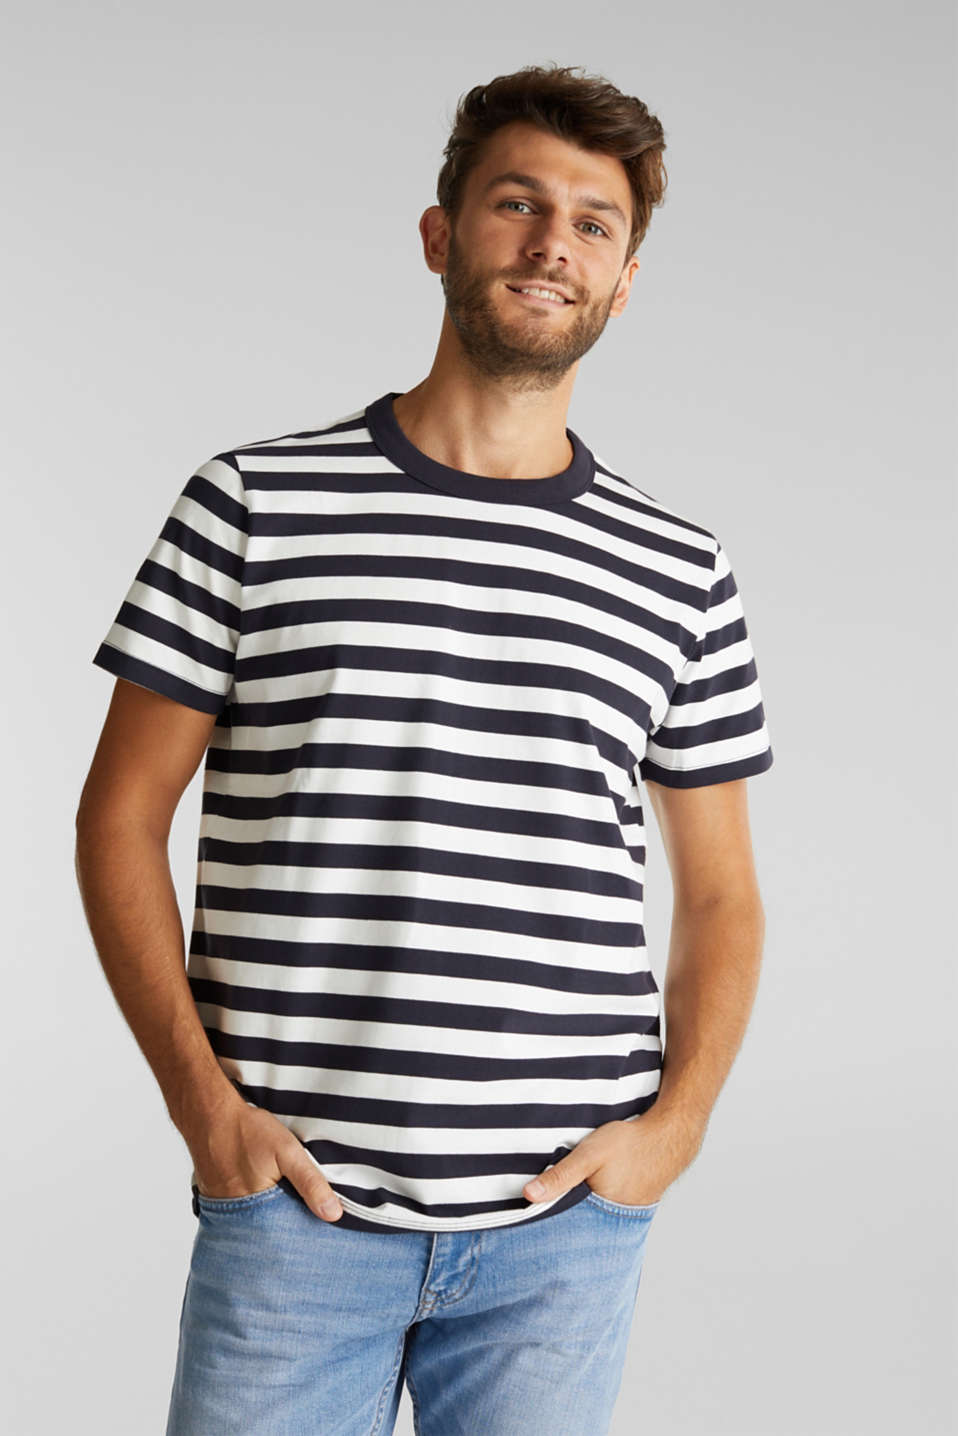 Esprit - Striped top made of 100% organic cotton